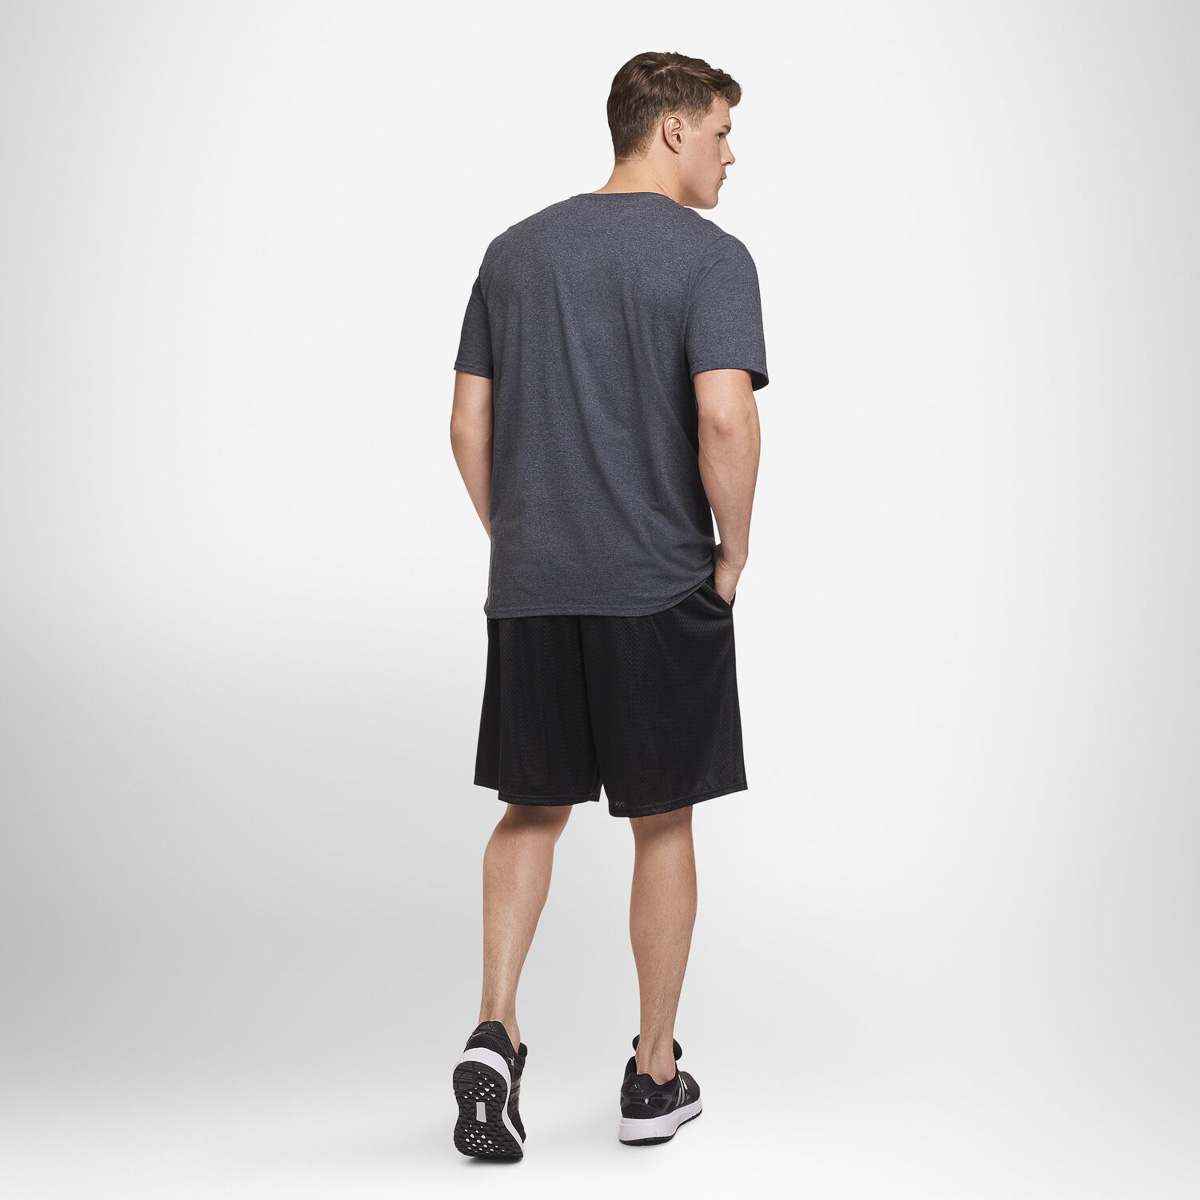 thumbnail 3 - Russell-Athletic-Mens-Shorts-With-Pockets-Mesh-Moisture-Wicking-Gym-Activewear